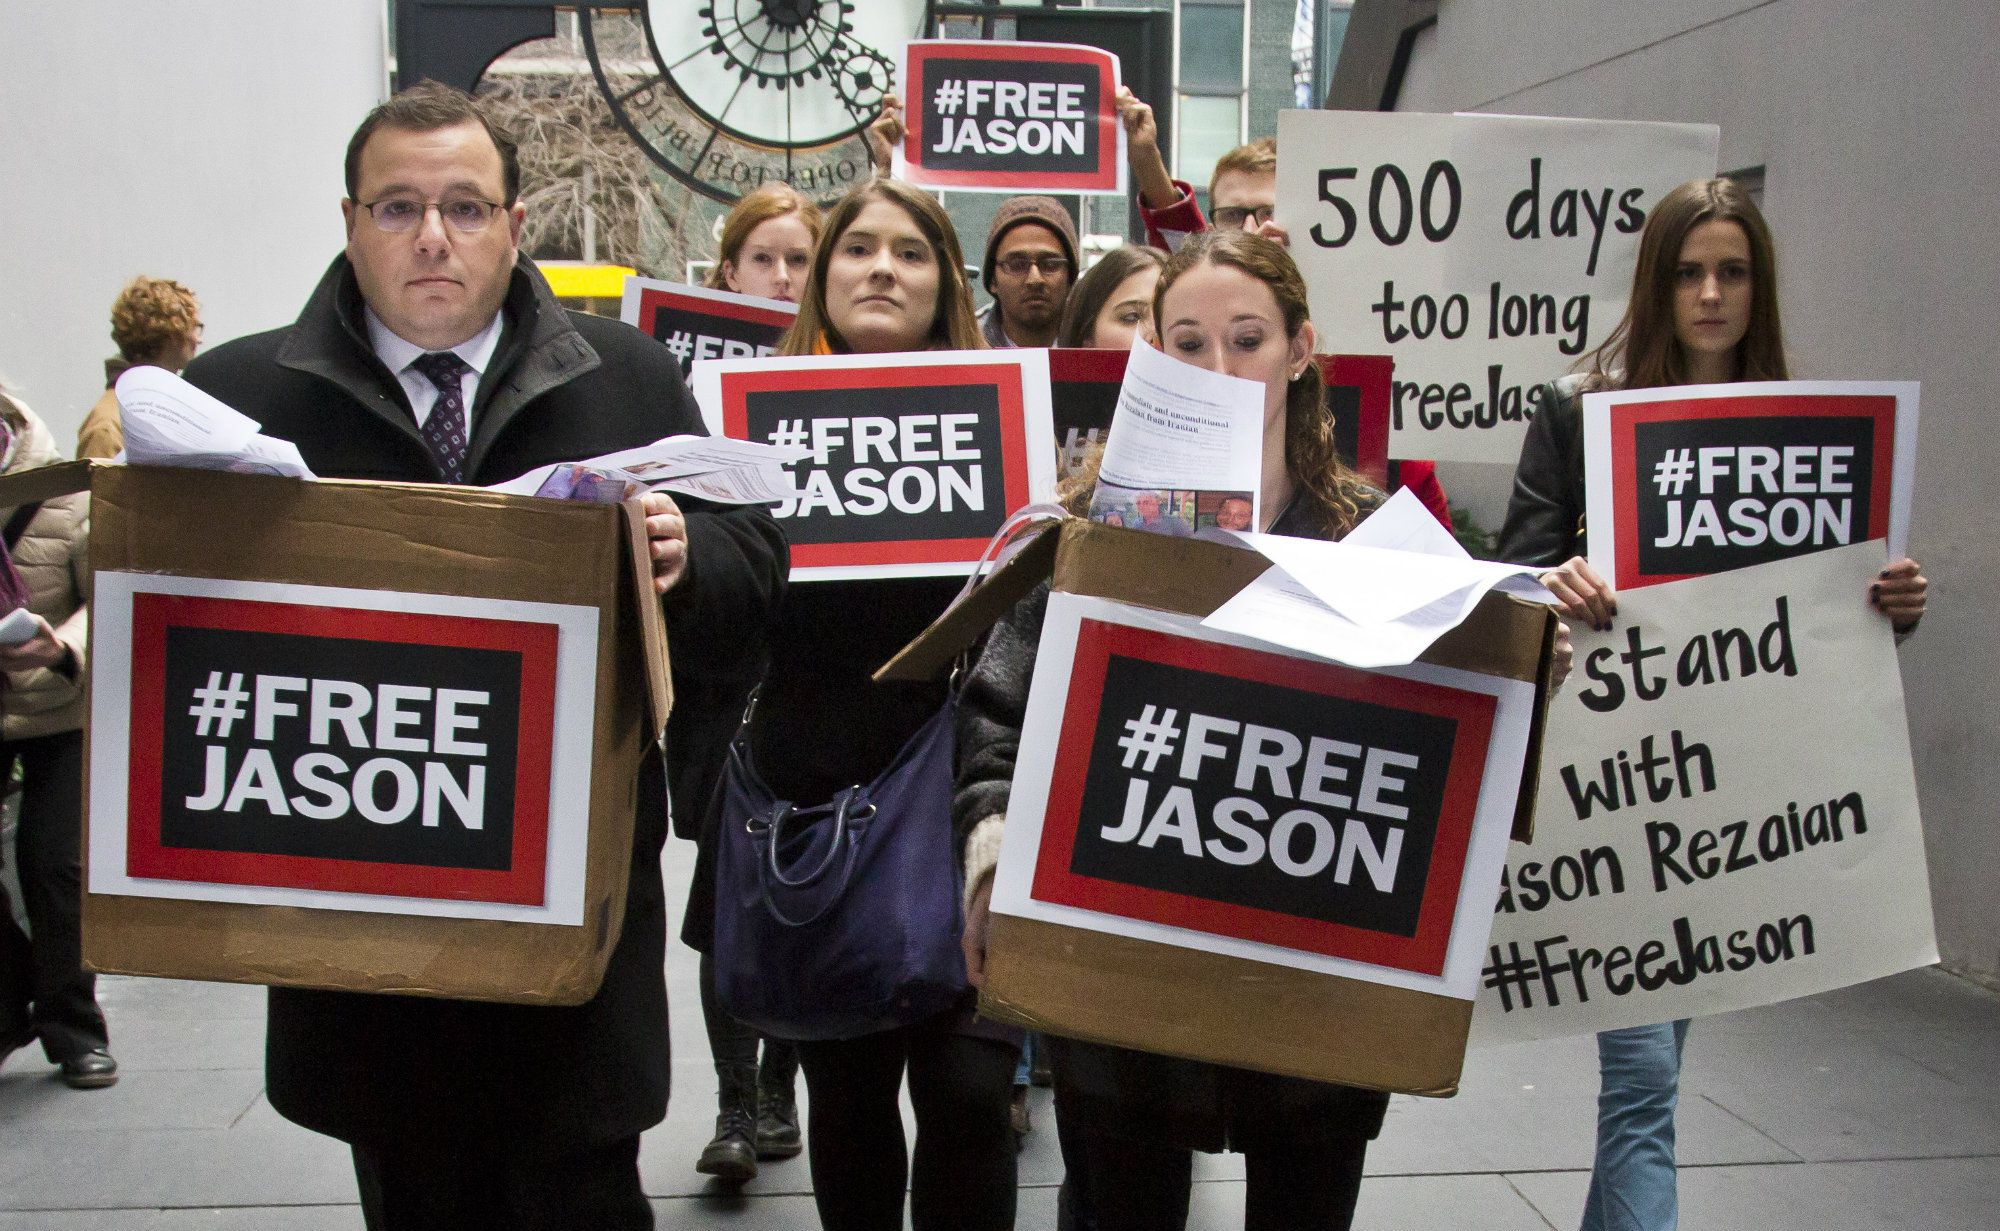 Ali Rezaian, far left, the brother of Washington Post reporter Jason Rezaian, rallies with supporters to deliver a petition of 500,000 signatures to Iran's United Nations mission asking for the release of his brother from prison, Thursday, Dec. 3, 2015, in New York. Thursday marks the 500th day of journalist Jason Rezaian's detention. Iranian TV reports he's been sentenced to prison on charges that include espionage. (AP Photo/Bebeto Matthews)